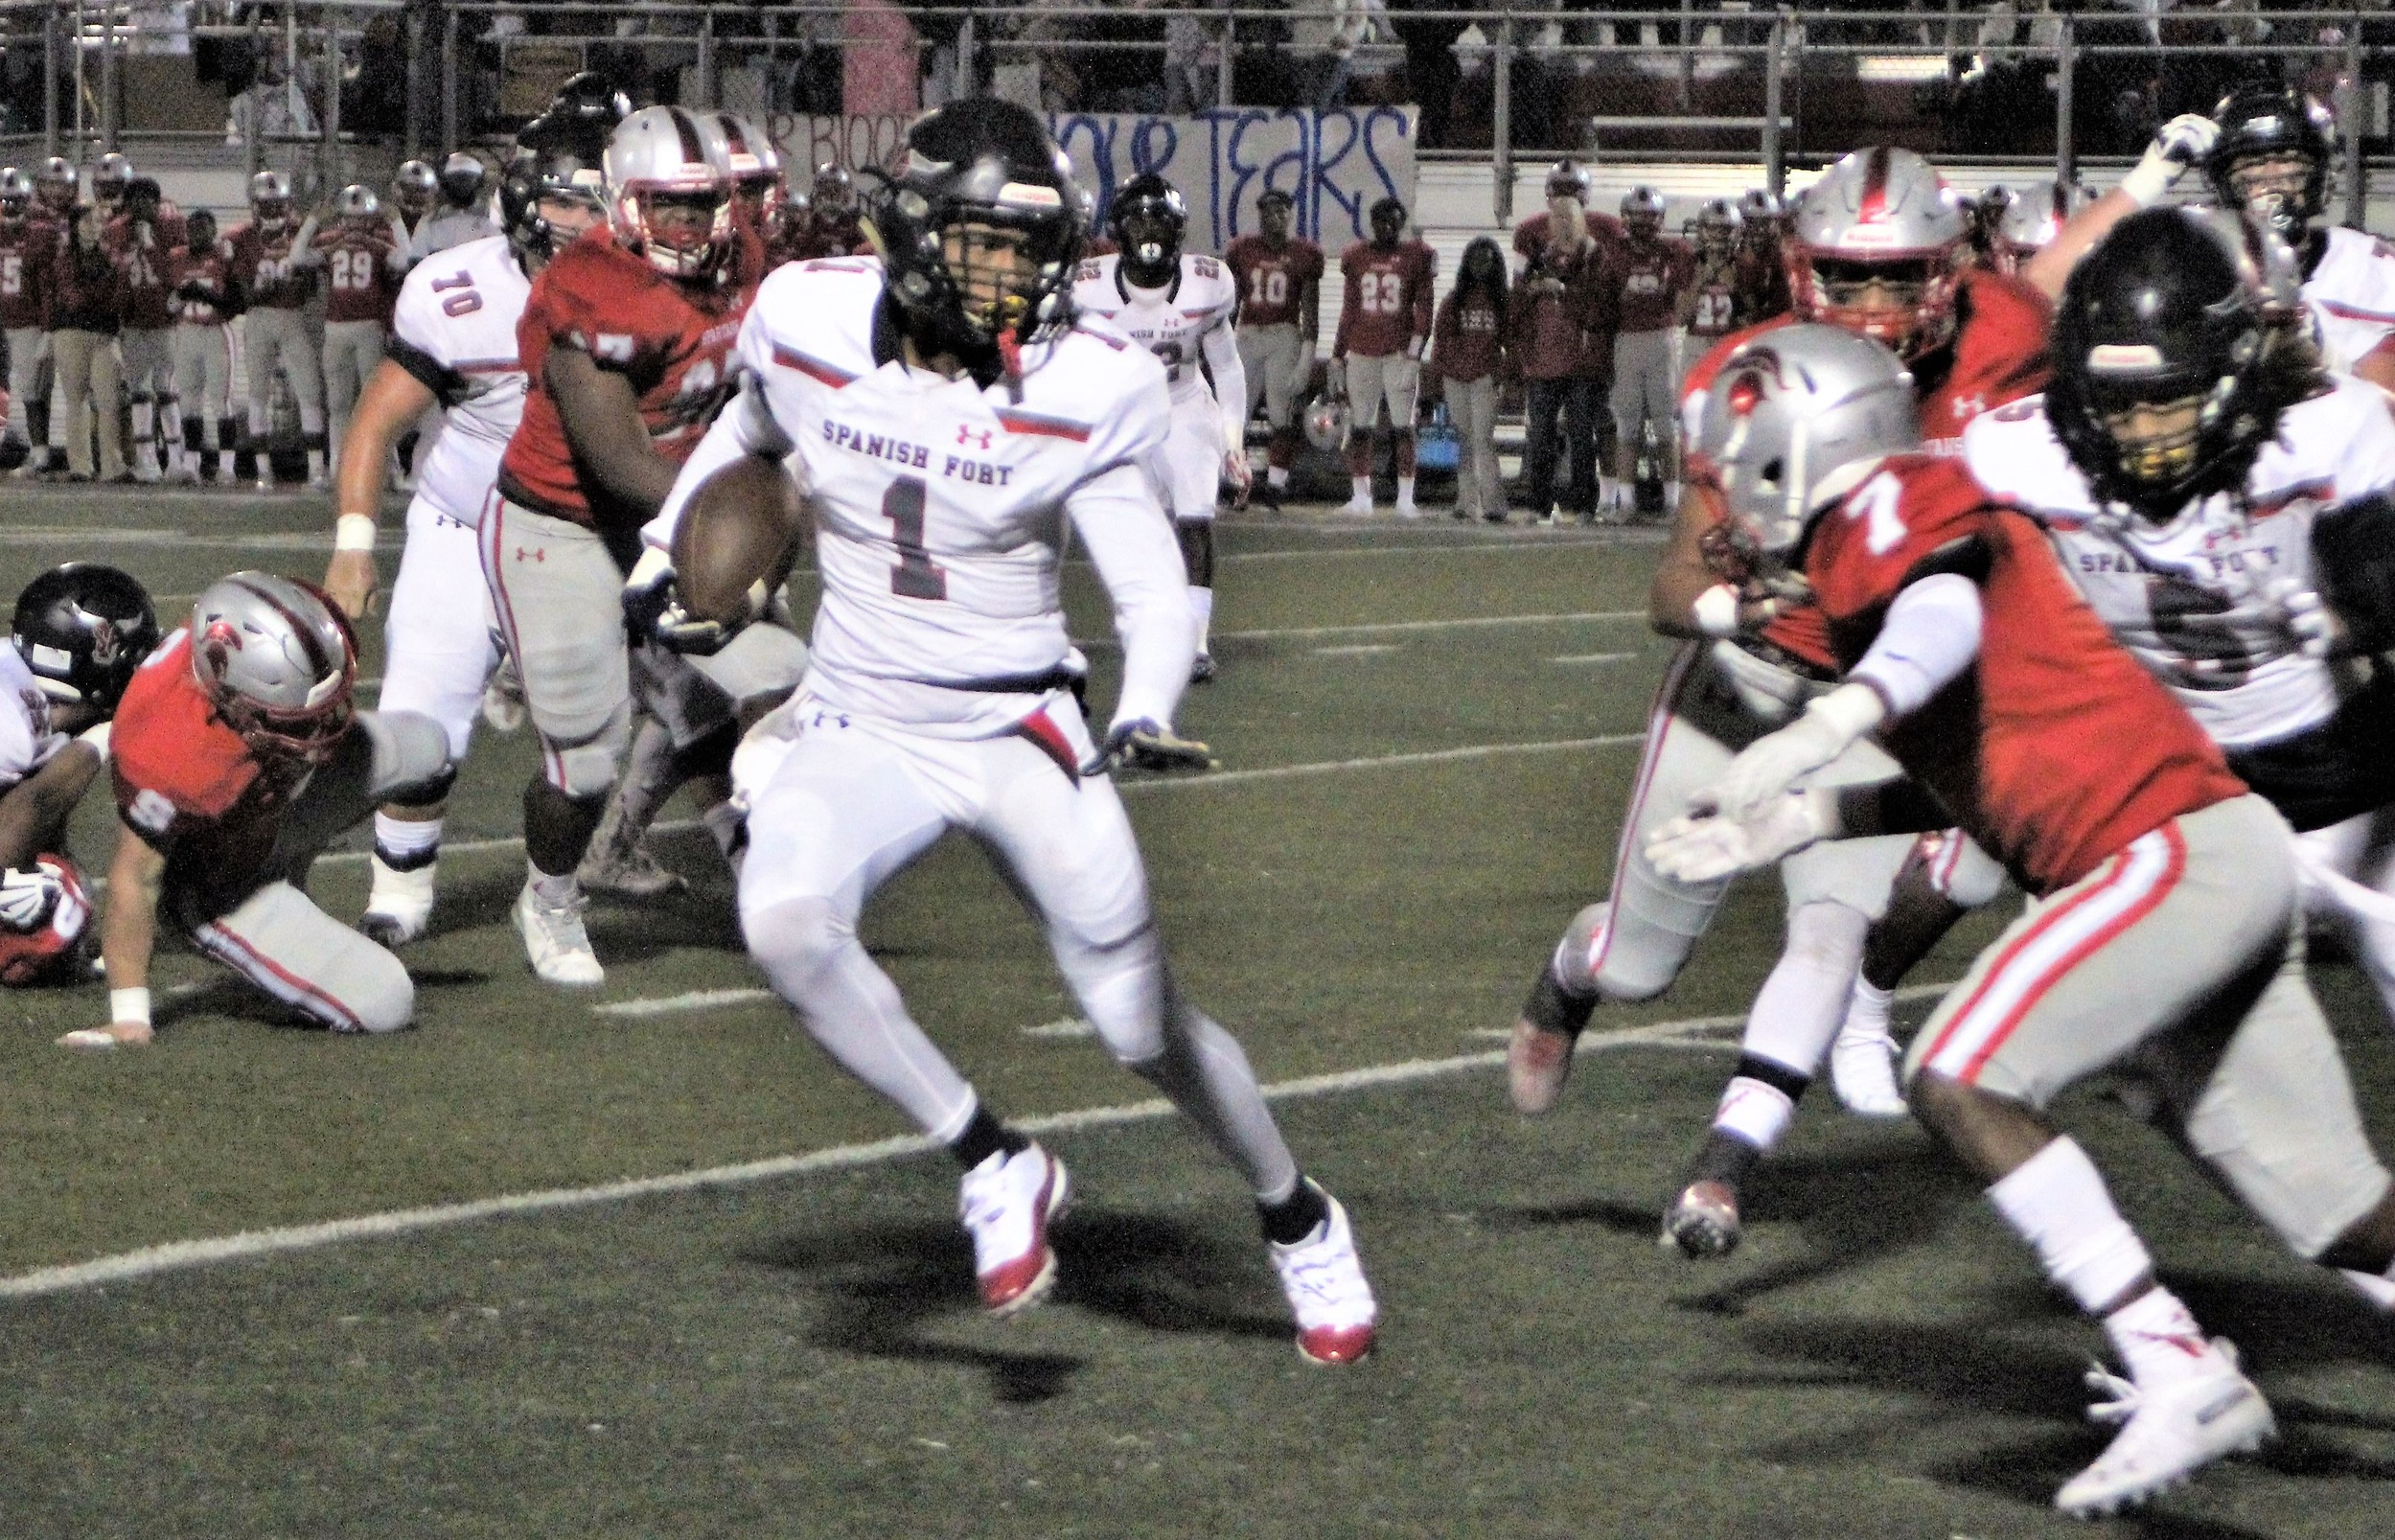 Kris Abrams-Draine (1) ran for 91 yards and a touchdown at Saraland